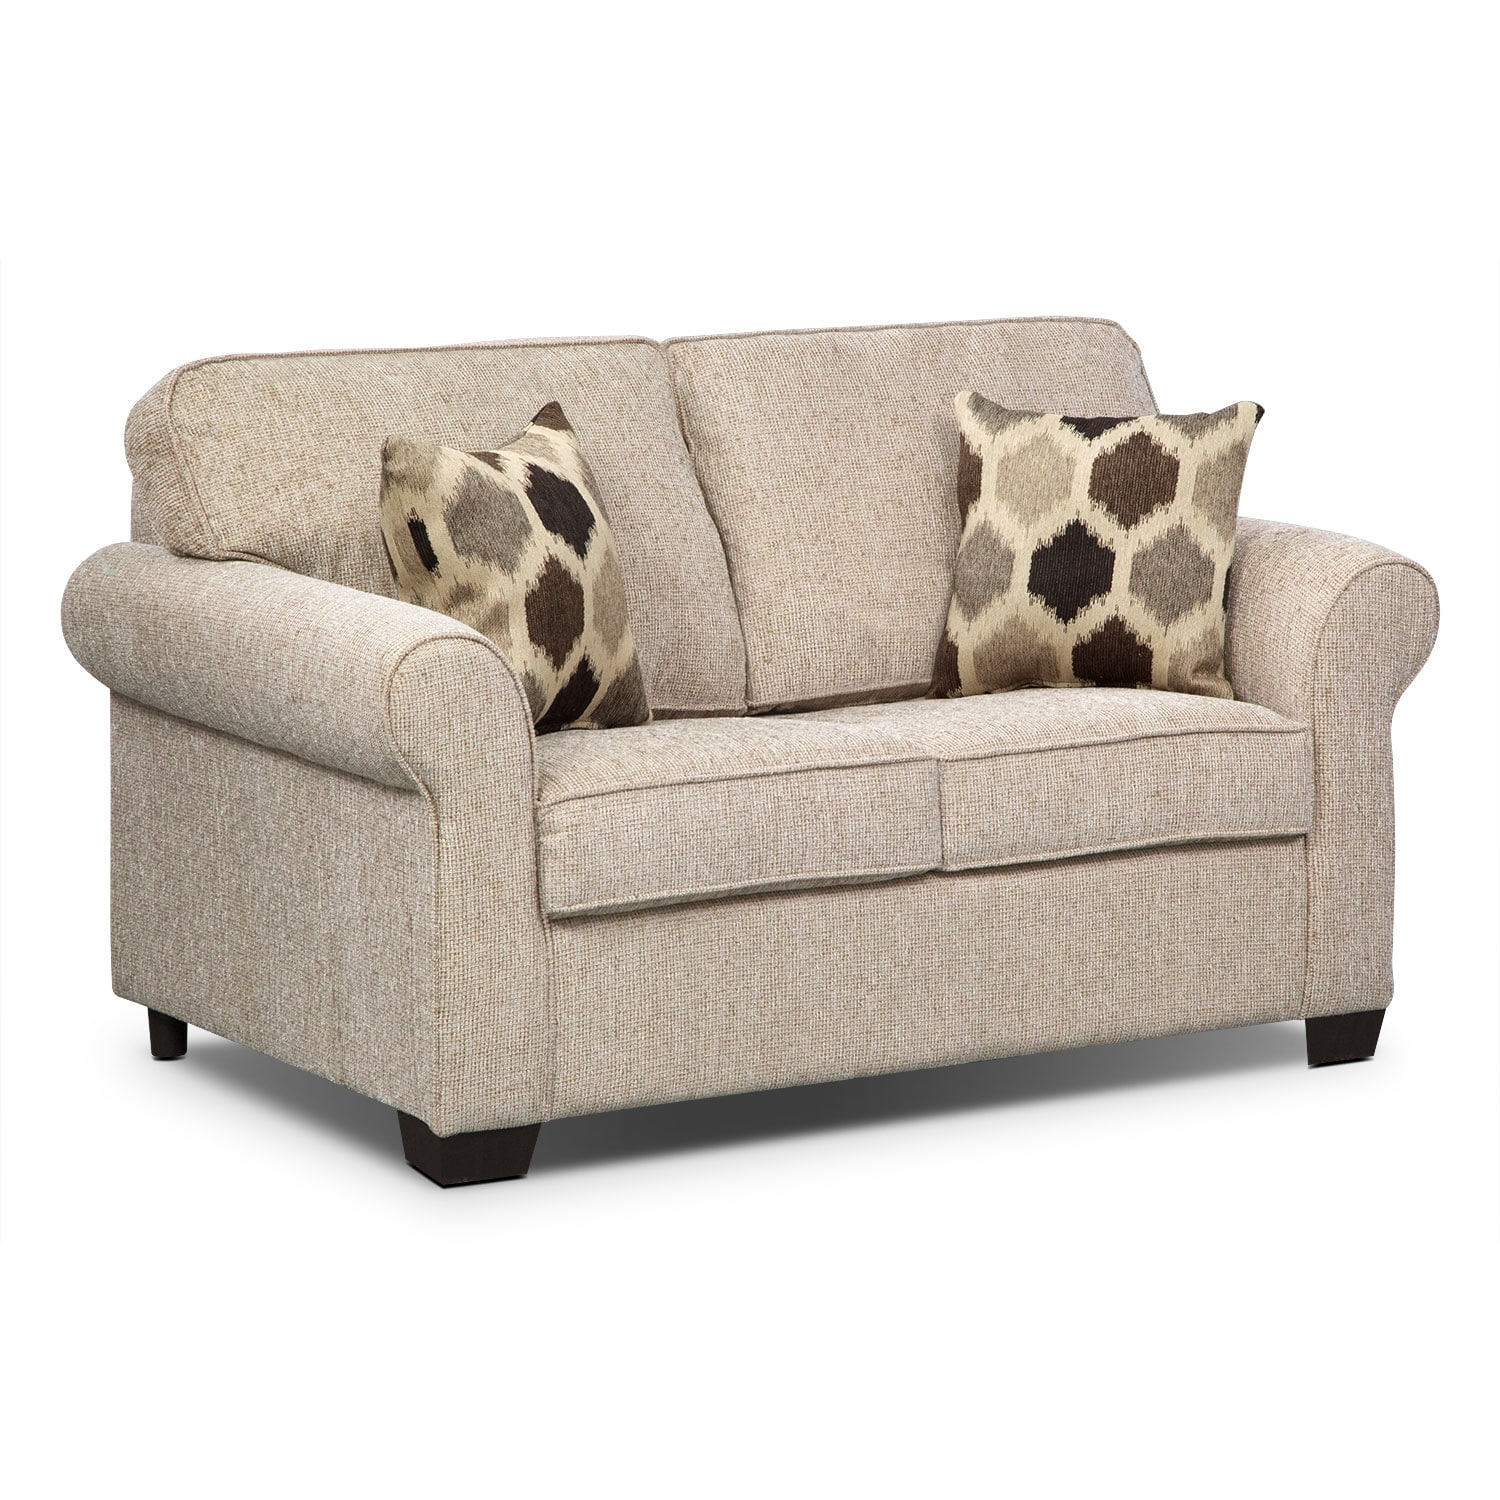 Fletcher twin innerspring sleeper sofa beige american signature furniture Sofa sleeper loveseat